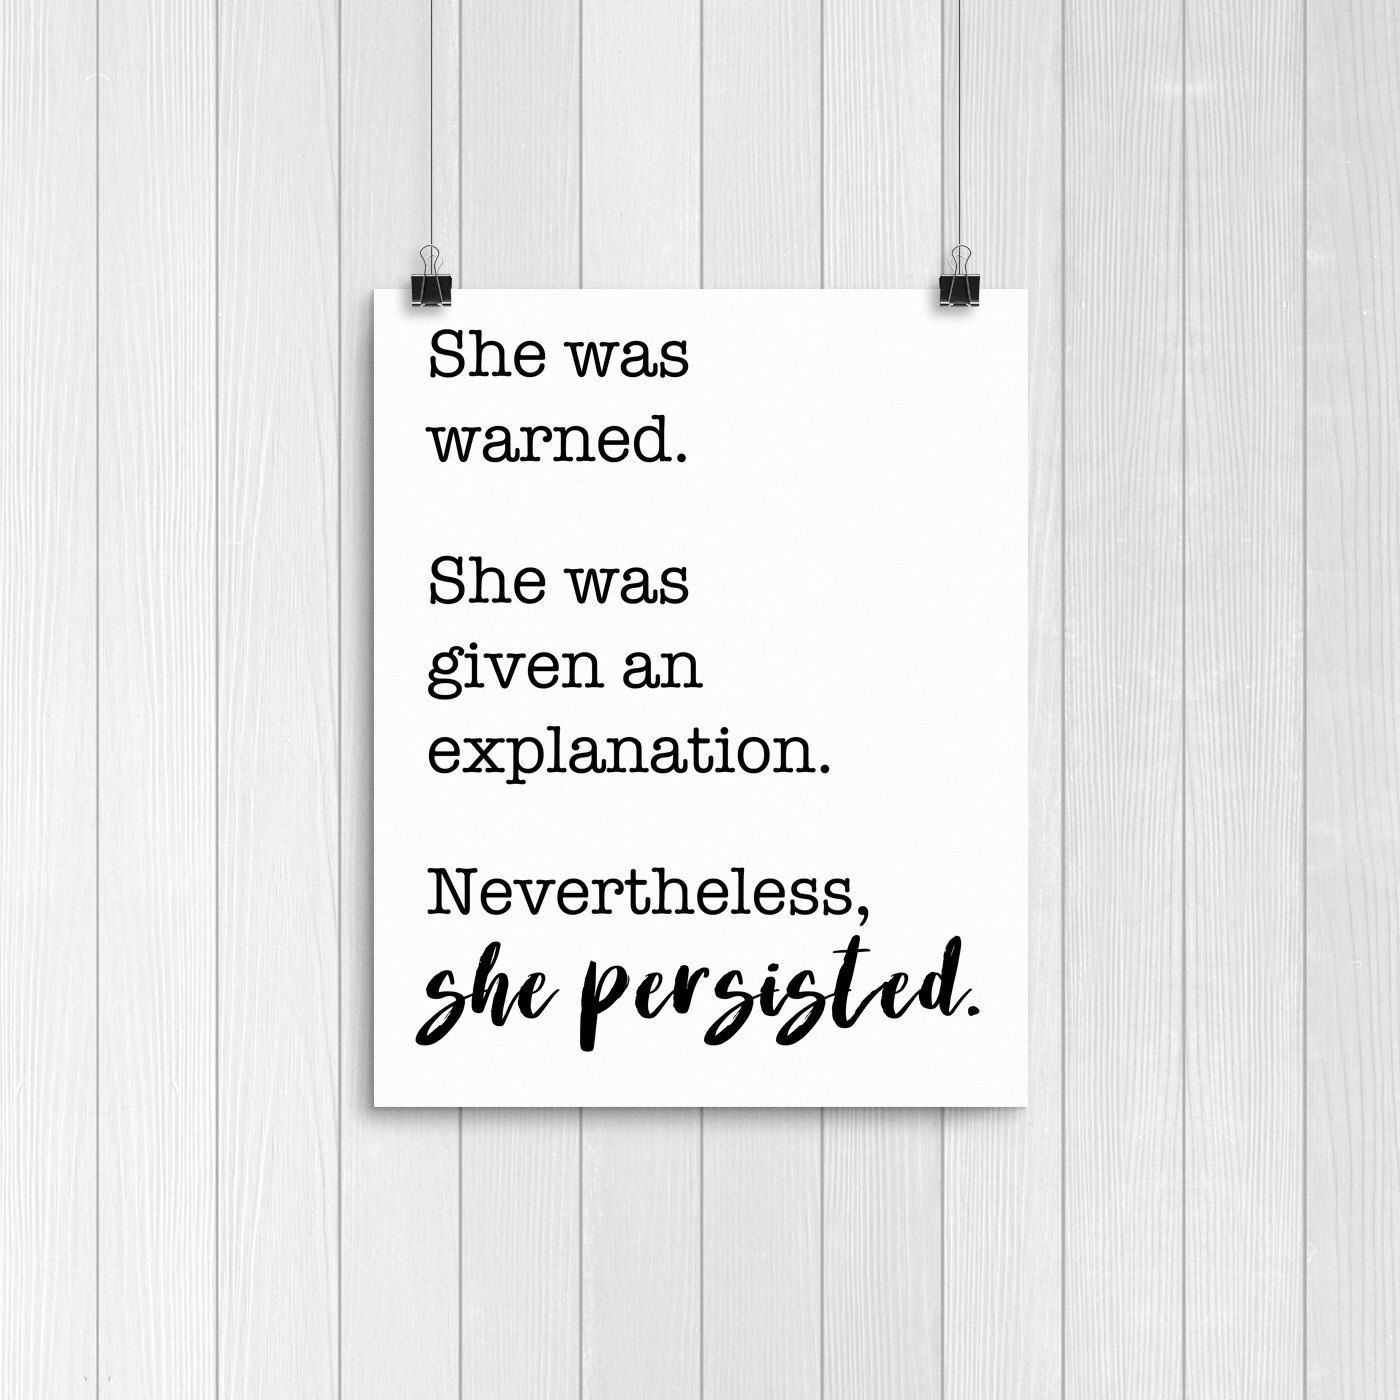 NEVERTHELESS SHE PERSISTED Poster, Senator Warren Print, Feminism Poster, She Persisted Print, Printed Poster, Protest Print, 16x20, 8x10 by ElRayPrints on Etsy https://www.etsy.com/listing/497620458/nevertheless-she-persisted-poster